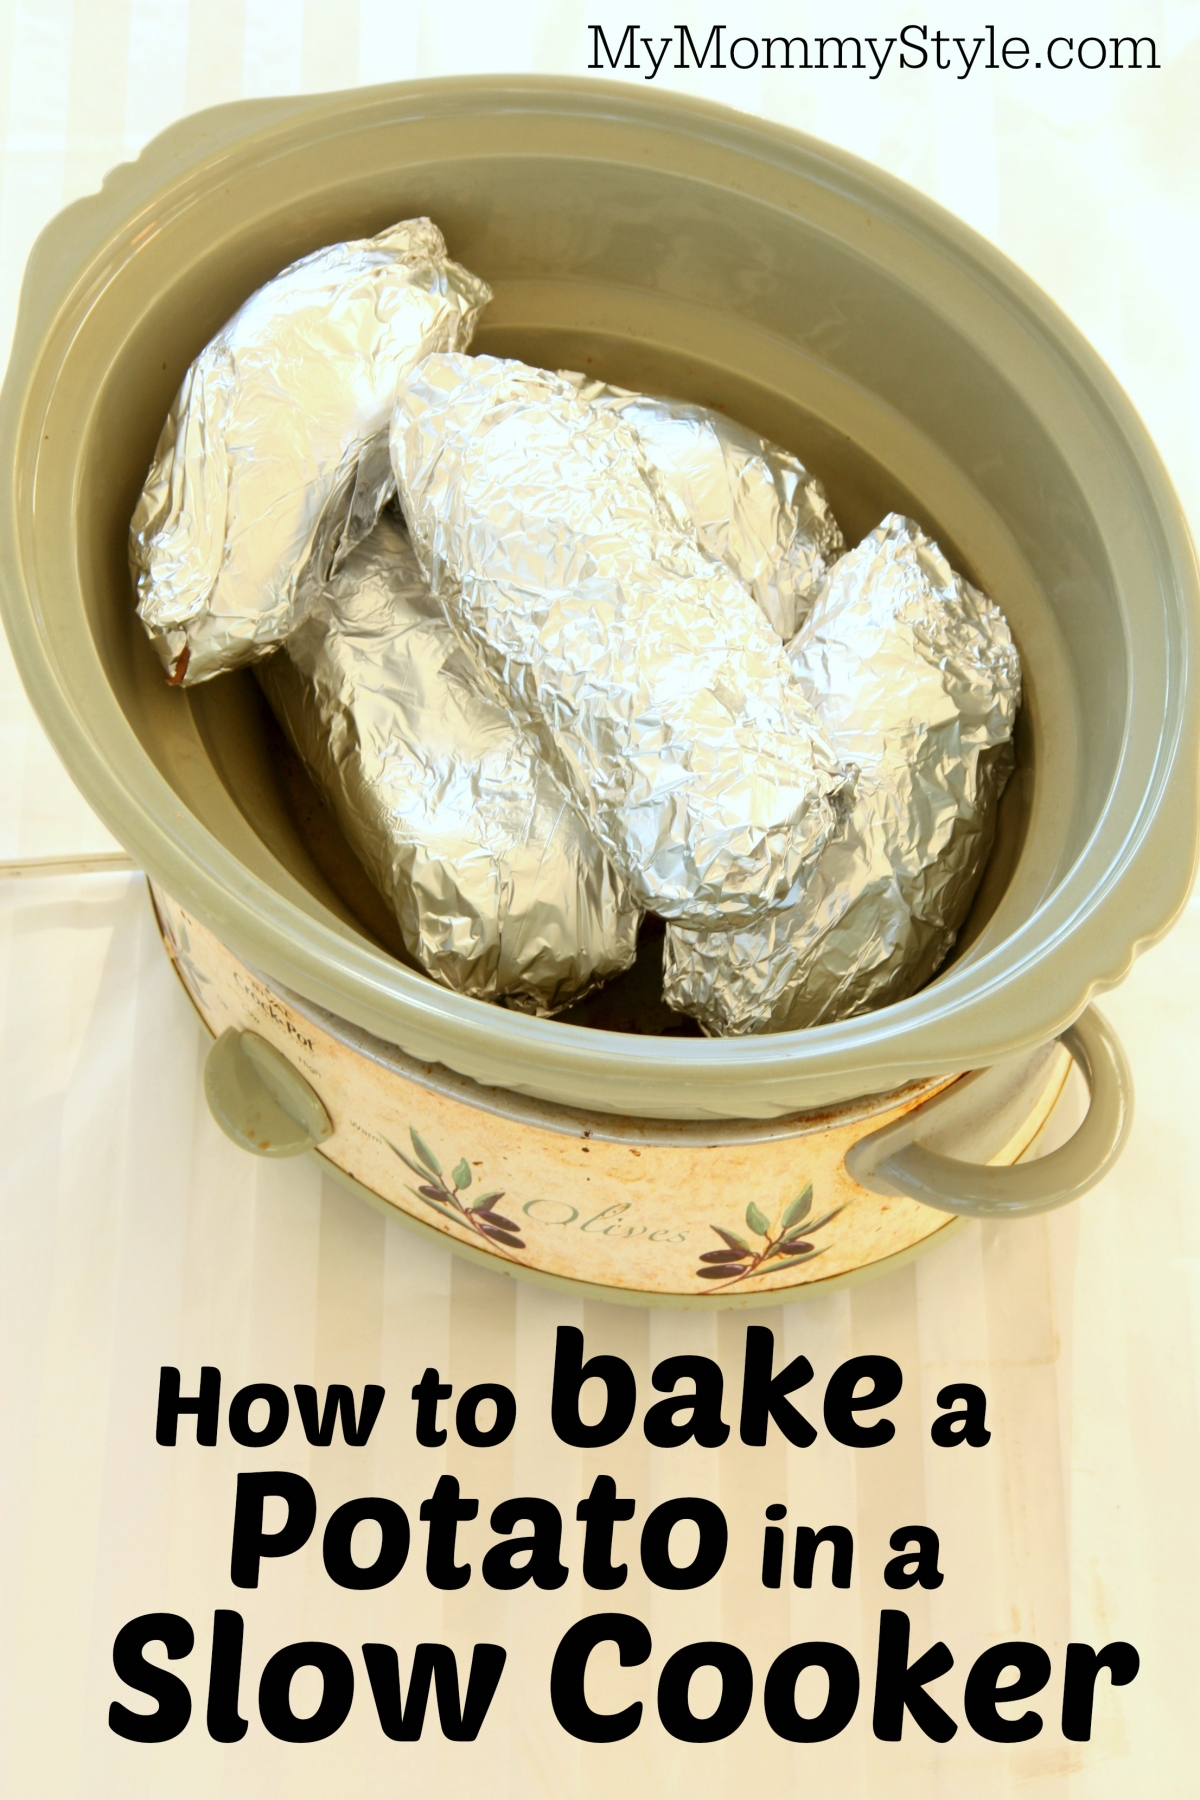 How to bake a potato in a slow cooker - My Mommy Style